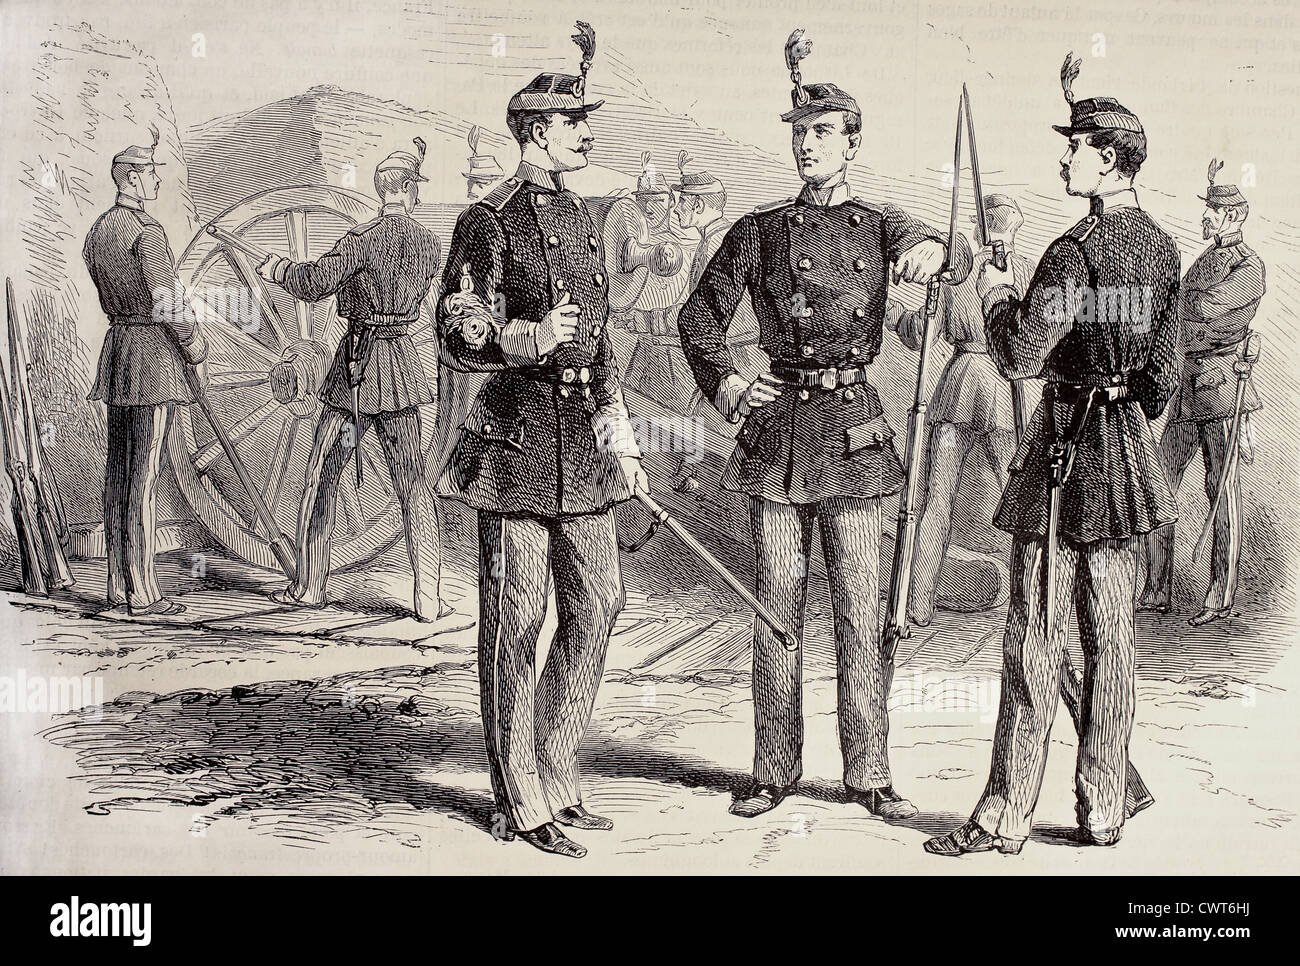 French National Guard uniforms - Stock Image